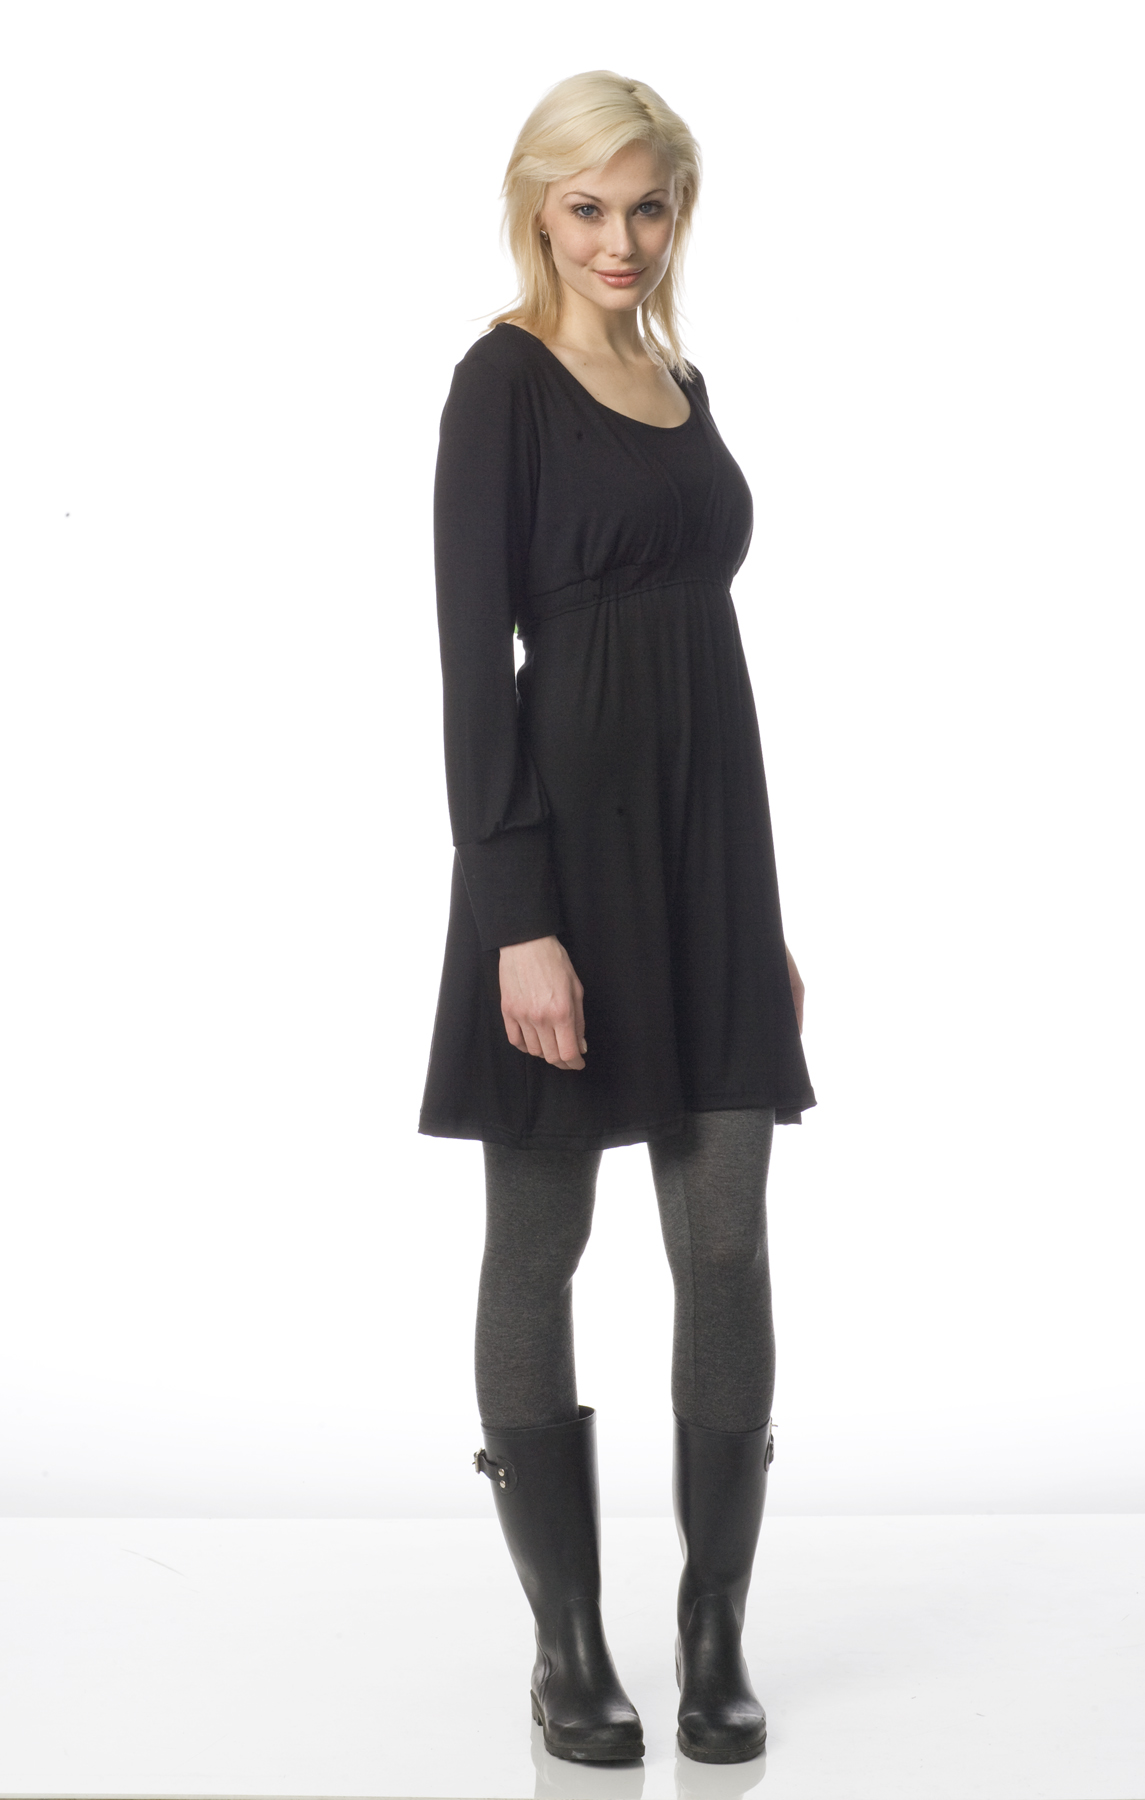 nixilu-bohemian-nursing-tunic-top-black.jpg